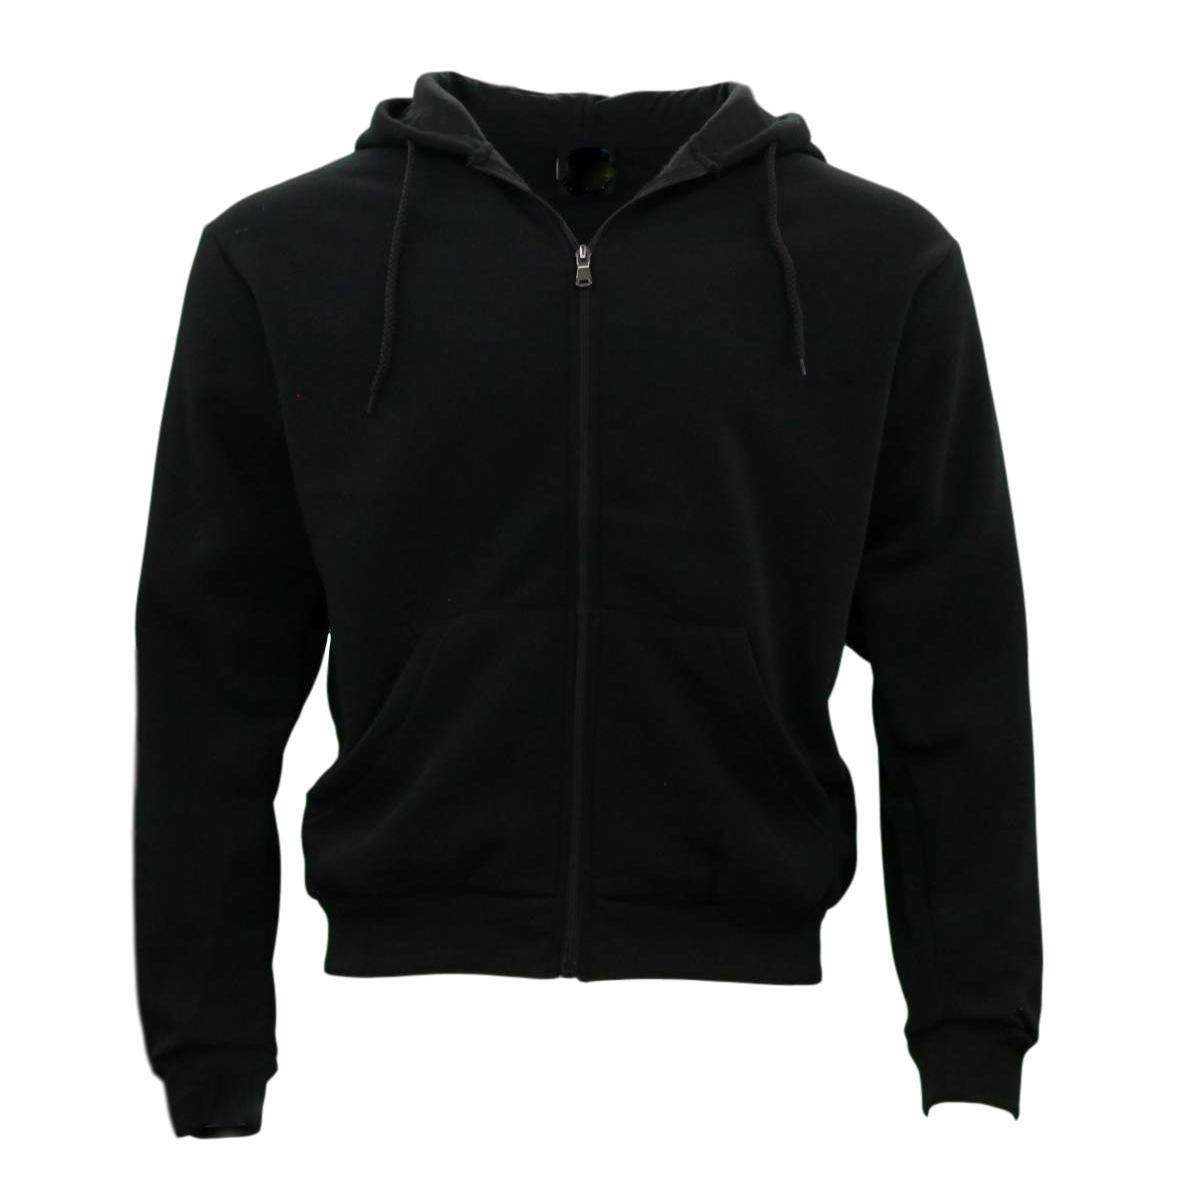 Adult-Unisex-Men-039-s-Zip-Up-Hoodie-w-Fleece-Hooded-Jacket-Jumper-Basic-Blank-Plain thumbnail 4